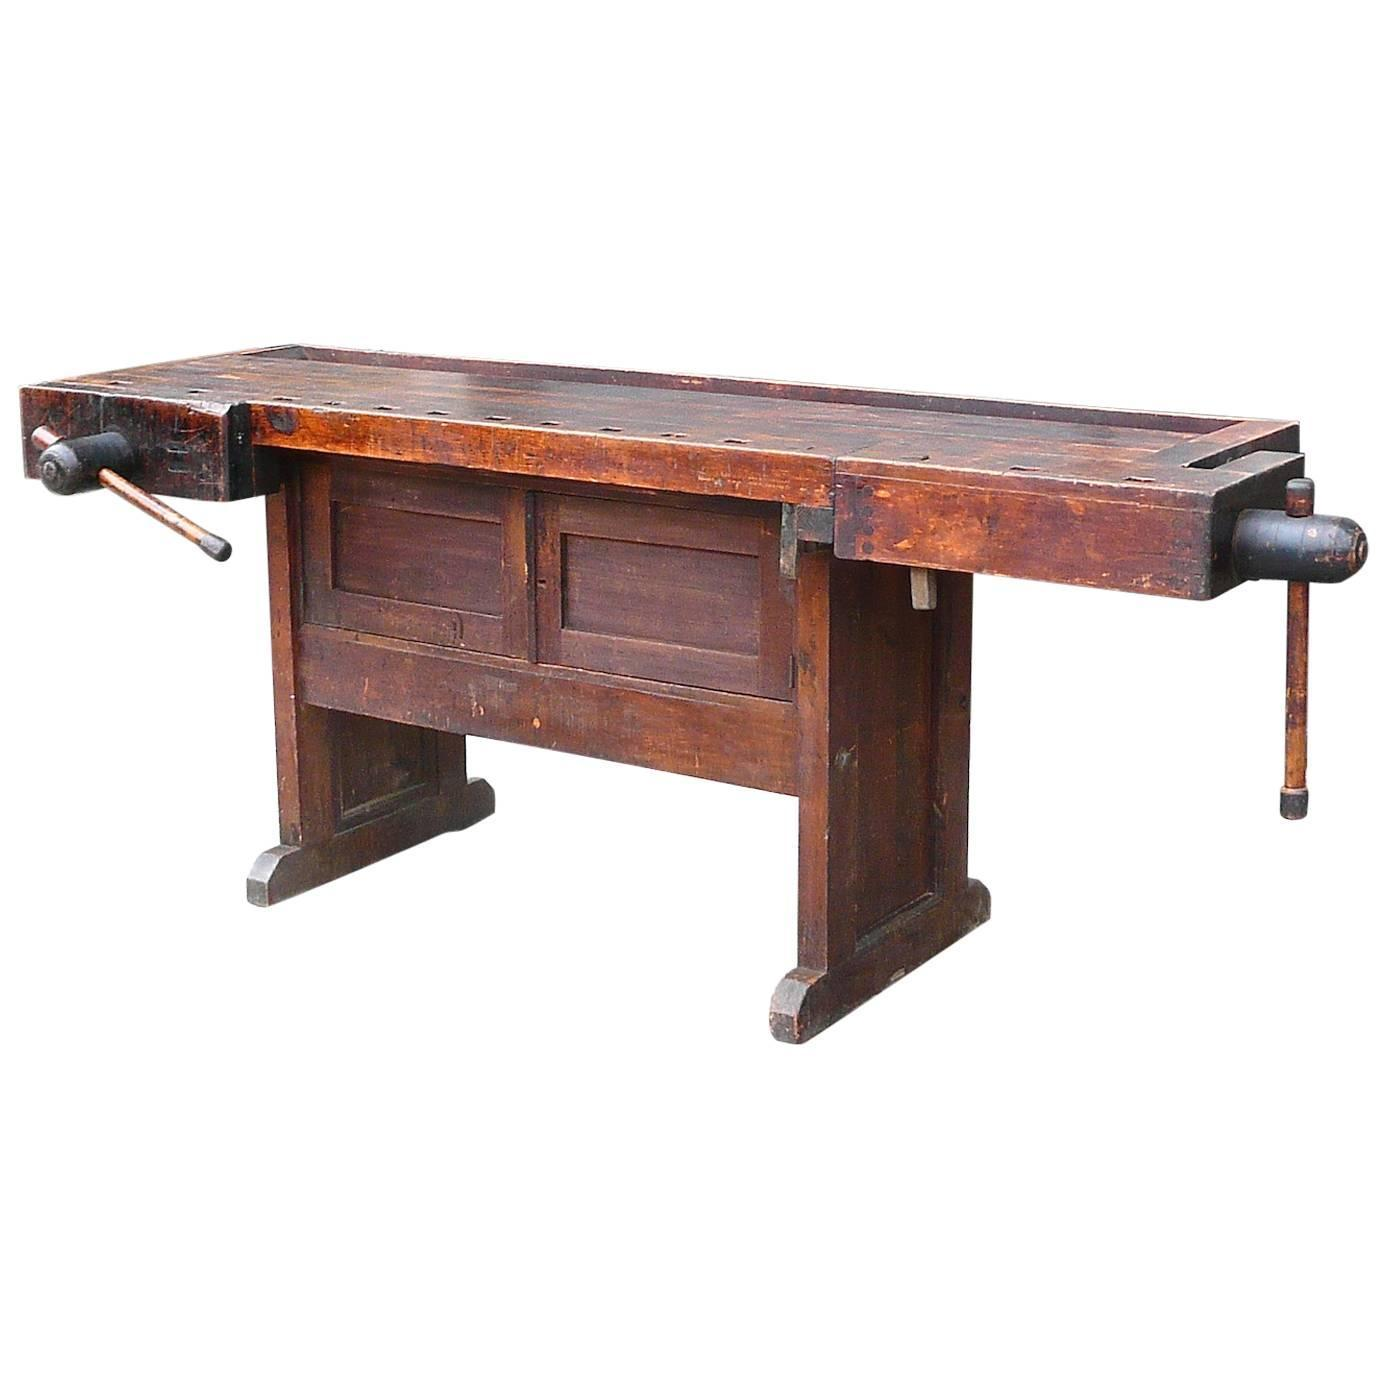 Industrial Cabinet Maker 39 S Workbench Attributed To Hammacher Schlemmer For Sale At 1stdibs